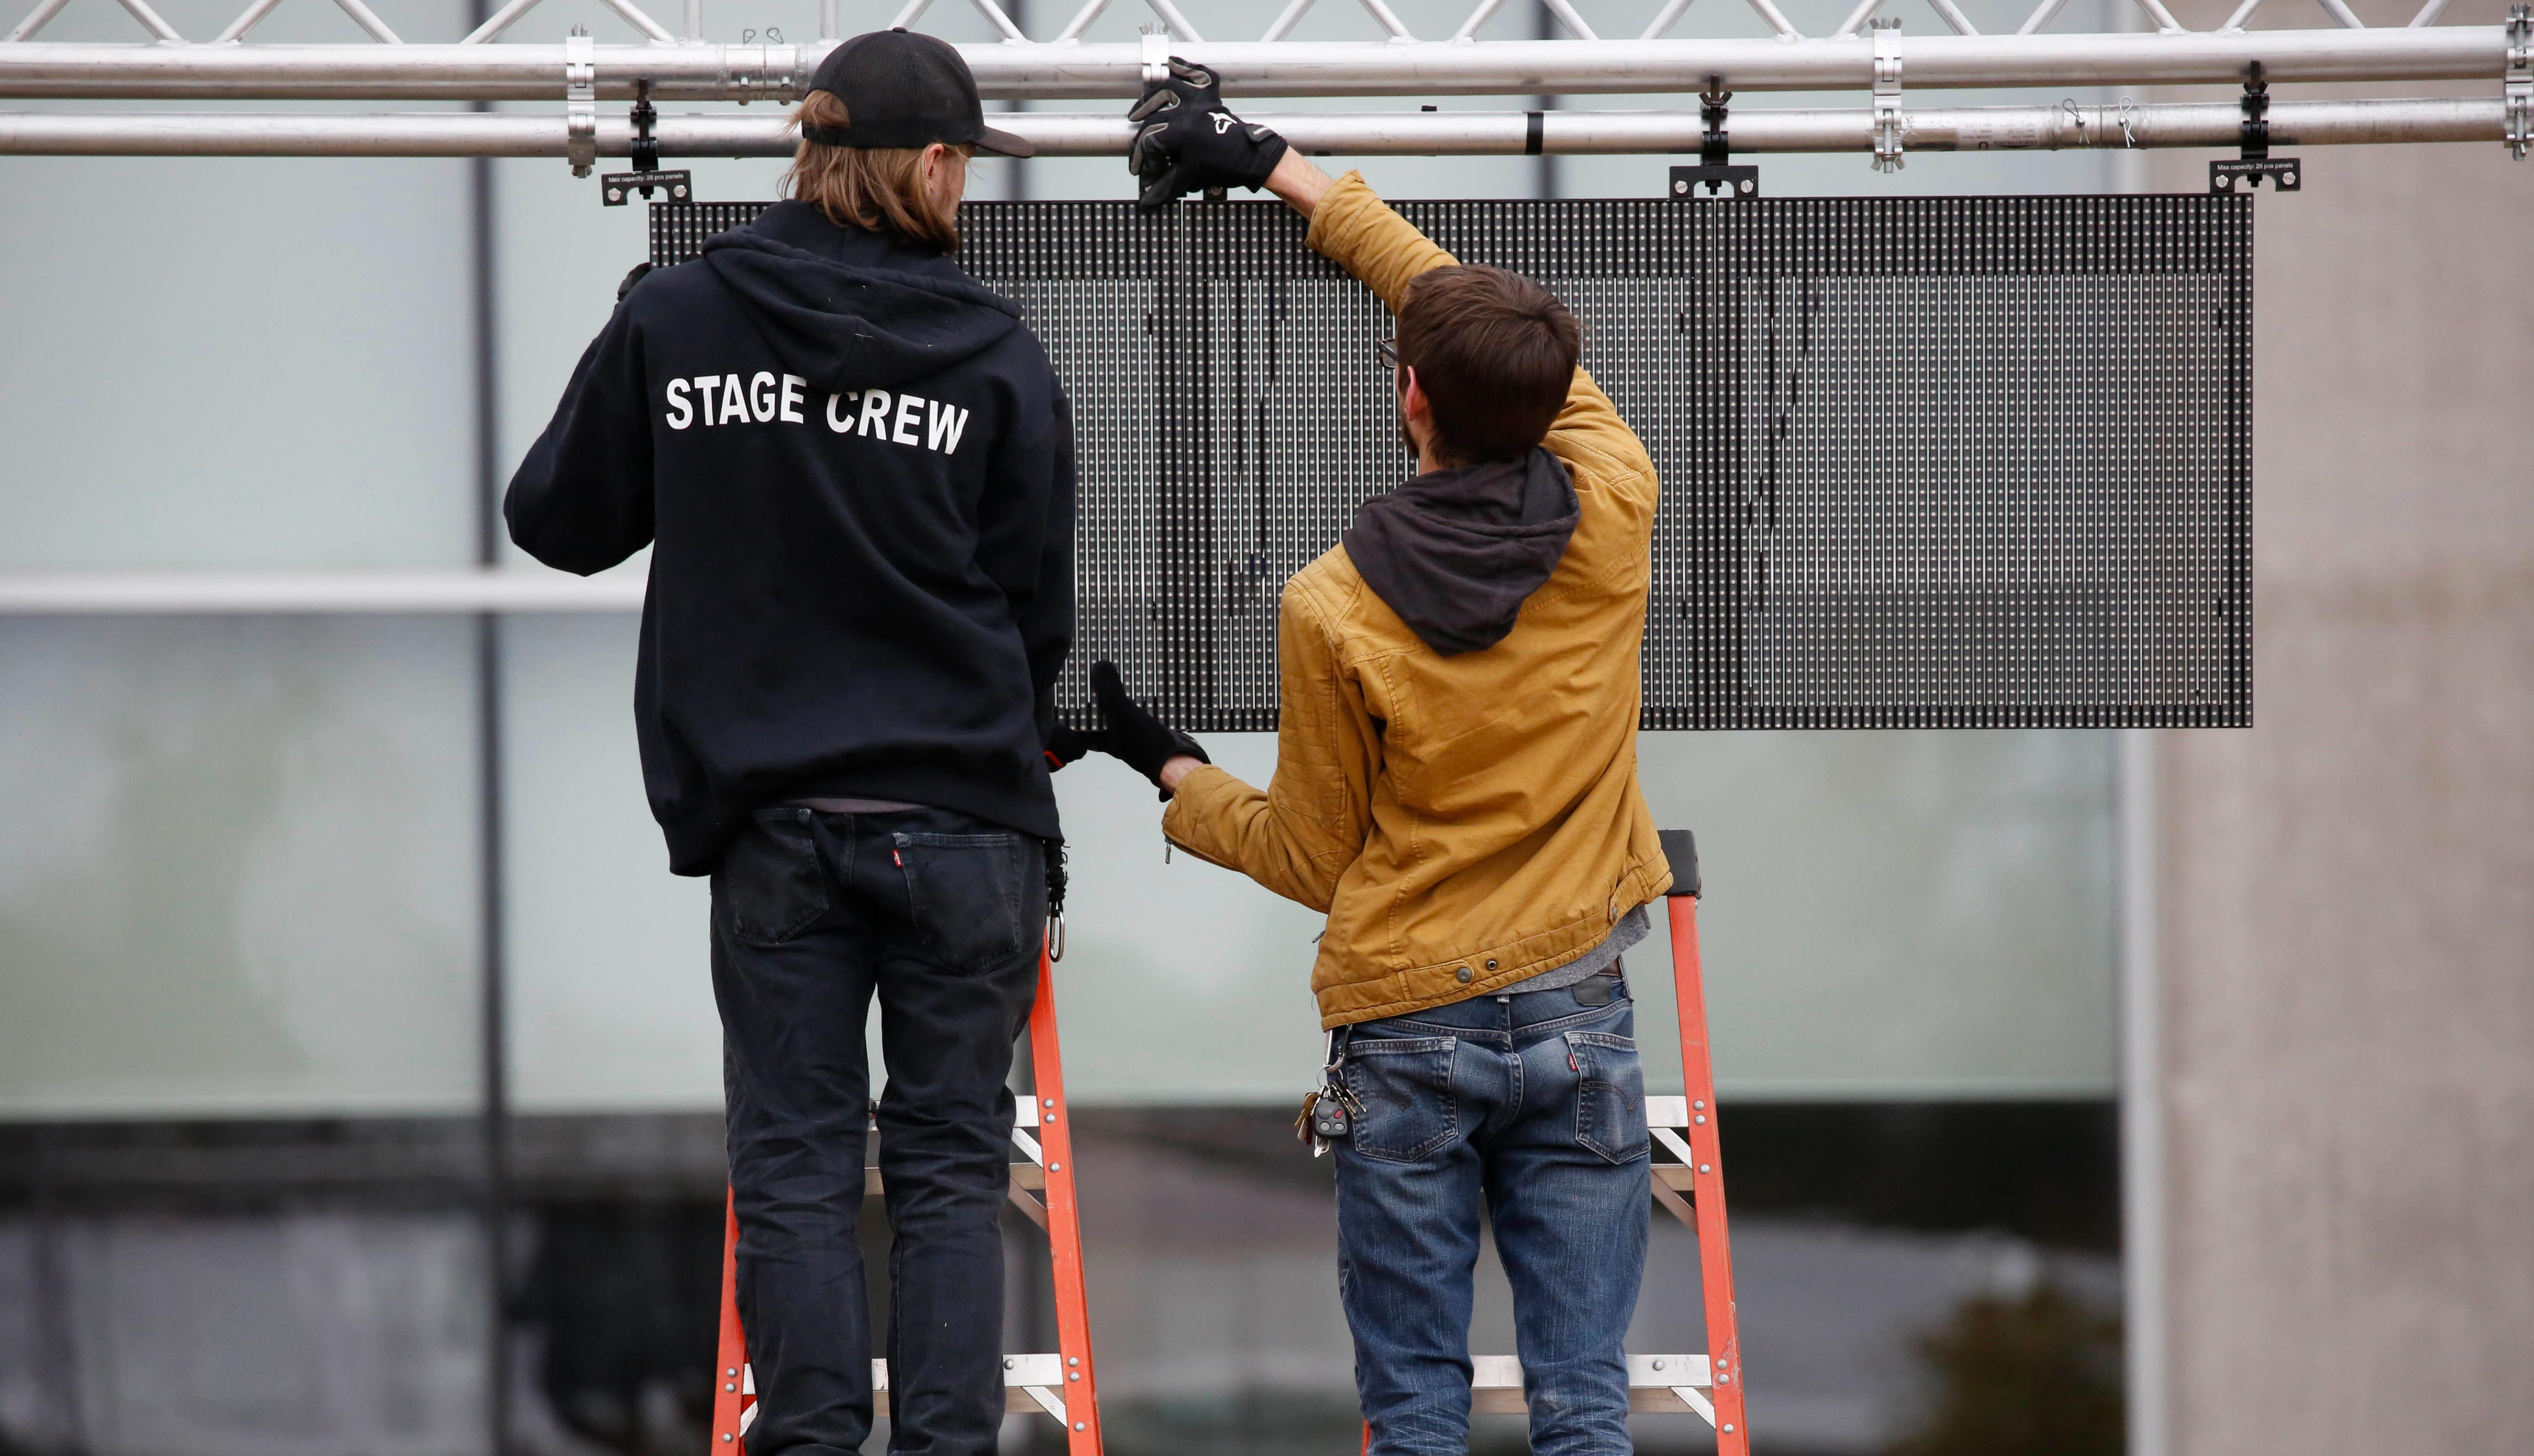 Workmen construct a lighted panel near the stage before the state's two newest museums, the Museum of Mississippi History and the Mississippi Civil Rights Museum, Thursday, Dec. 7, 2017 in Jackson, Miss. The stage will play host to a day of musical acts as well as the opening ceremony for the museums. The long-planned Saturday ceremony will mark Mississippi's bicentennial of admission into the union, however the appearance of President Donald Trump at the ceremony has drawn the ire of U.S. Reps. John Lewis, D-Ga., and Bennie Thompson, D-Miss., who announced Thursday they won't attend the opening of Mississippi civil rights and history museums. What was intended as a moment of racial unity and atonement in the state with the largest share of African-Americans is descending into racial and partisan strife after Republican Mississippi Gov. Phil Bryant invited fellow Republican Trump to attend. (AP Photo/Rogelio V. Solis)